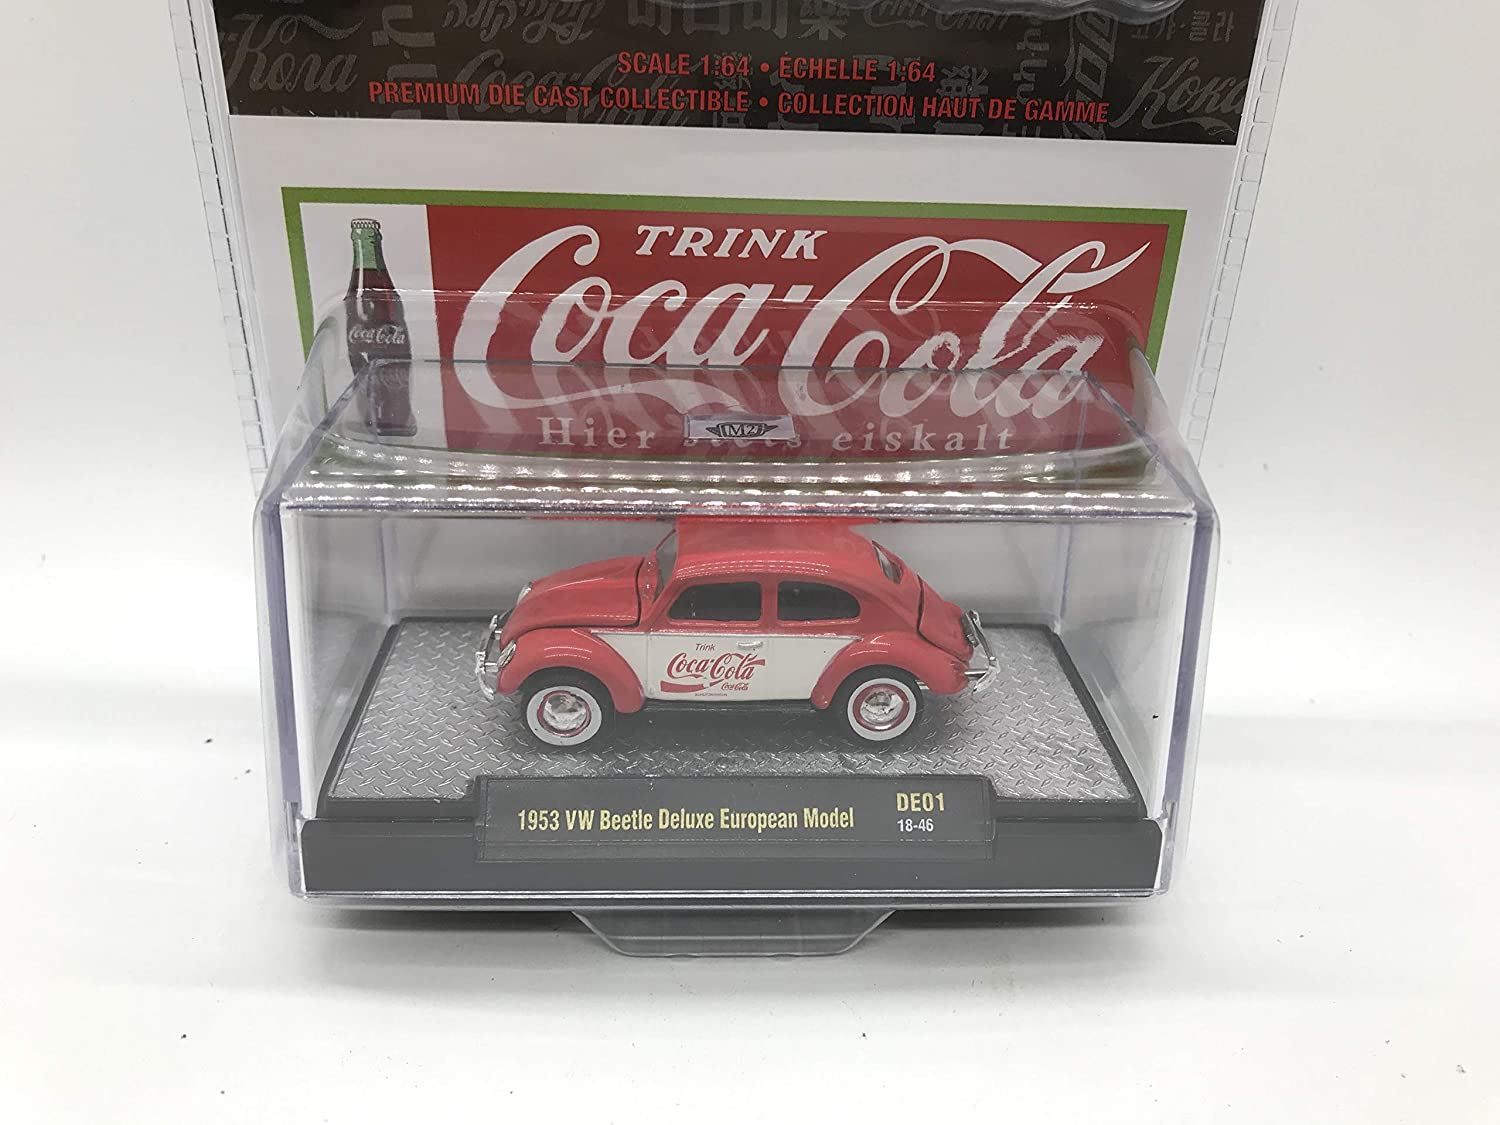 1 of 9600 M2 Machines by M2 Collectible Coca-Cola 1953 VW Beetle Deluxe European Model 1:64 Scale DE01 18-46 Red//White Details Like NO Other